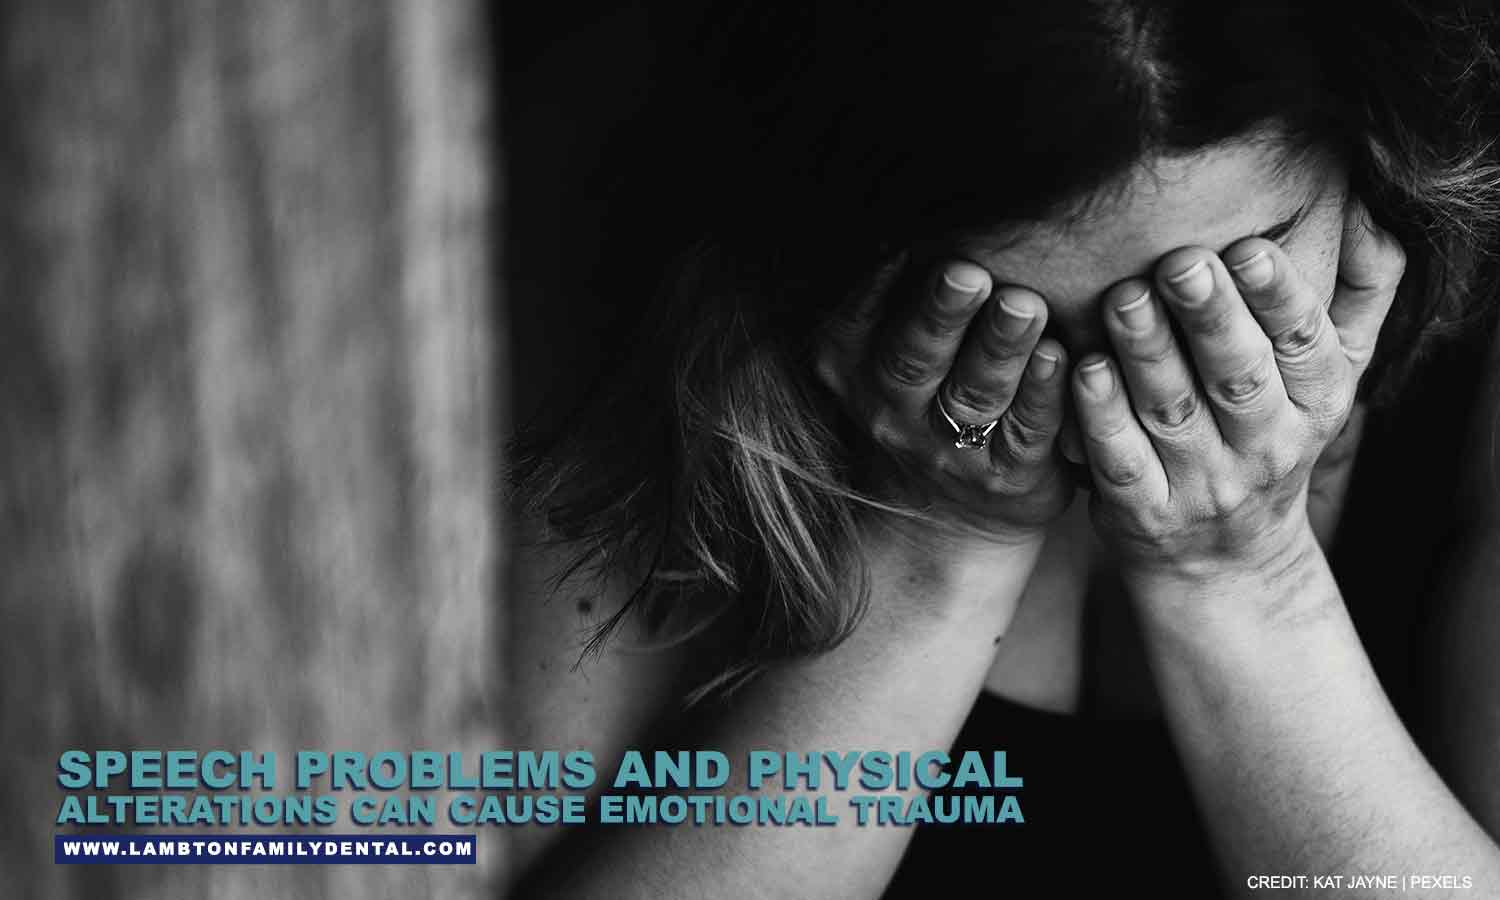 Speech problems and physical alterations can cause emotional trauma